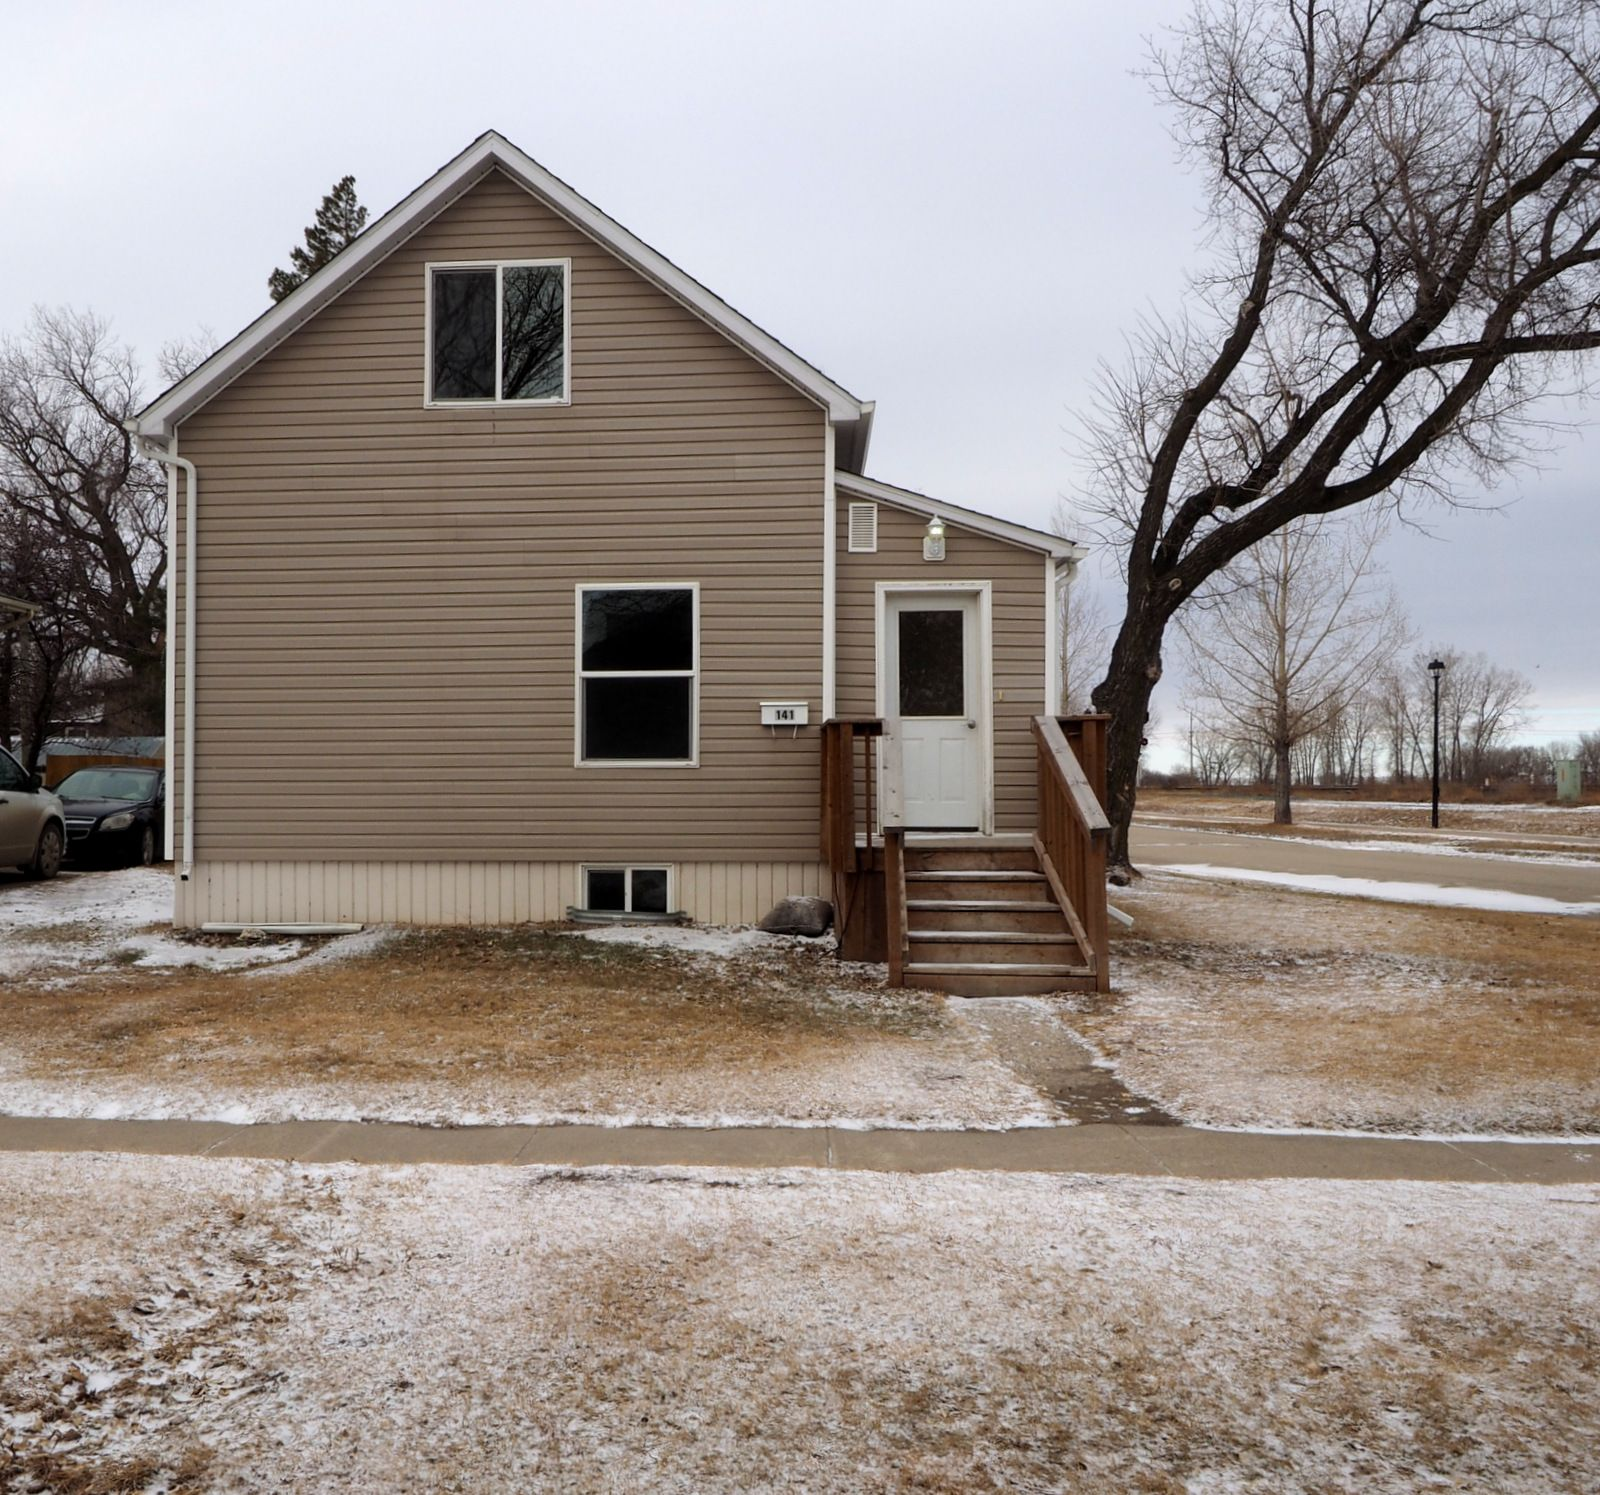 Main Photo: 141 11th Street NW in Portage la Prairie: House for sale : MLS®# 202100557